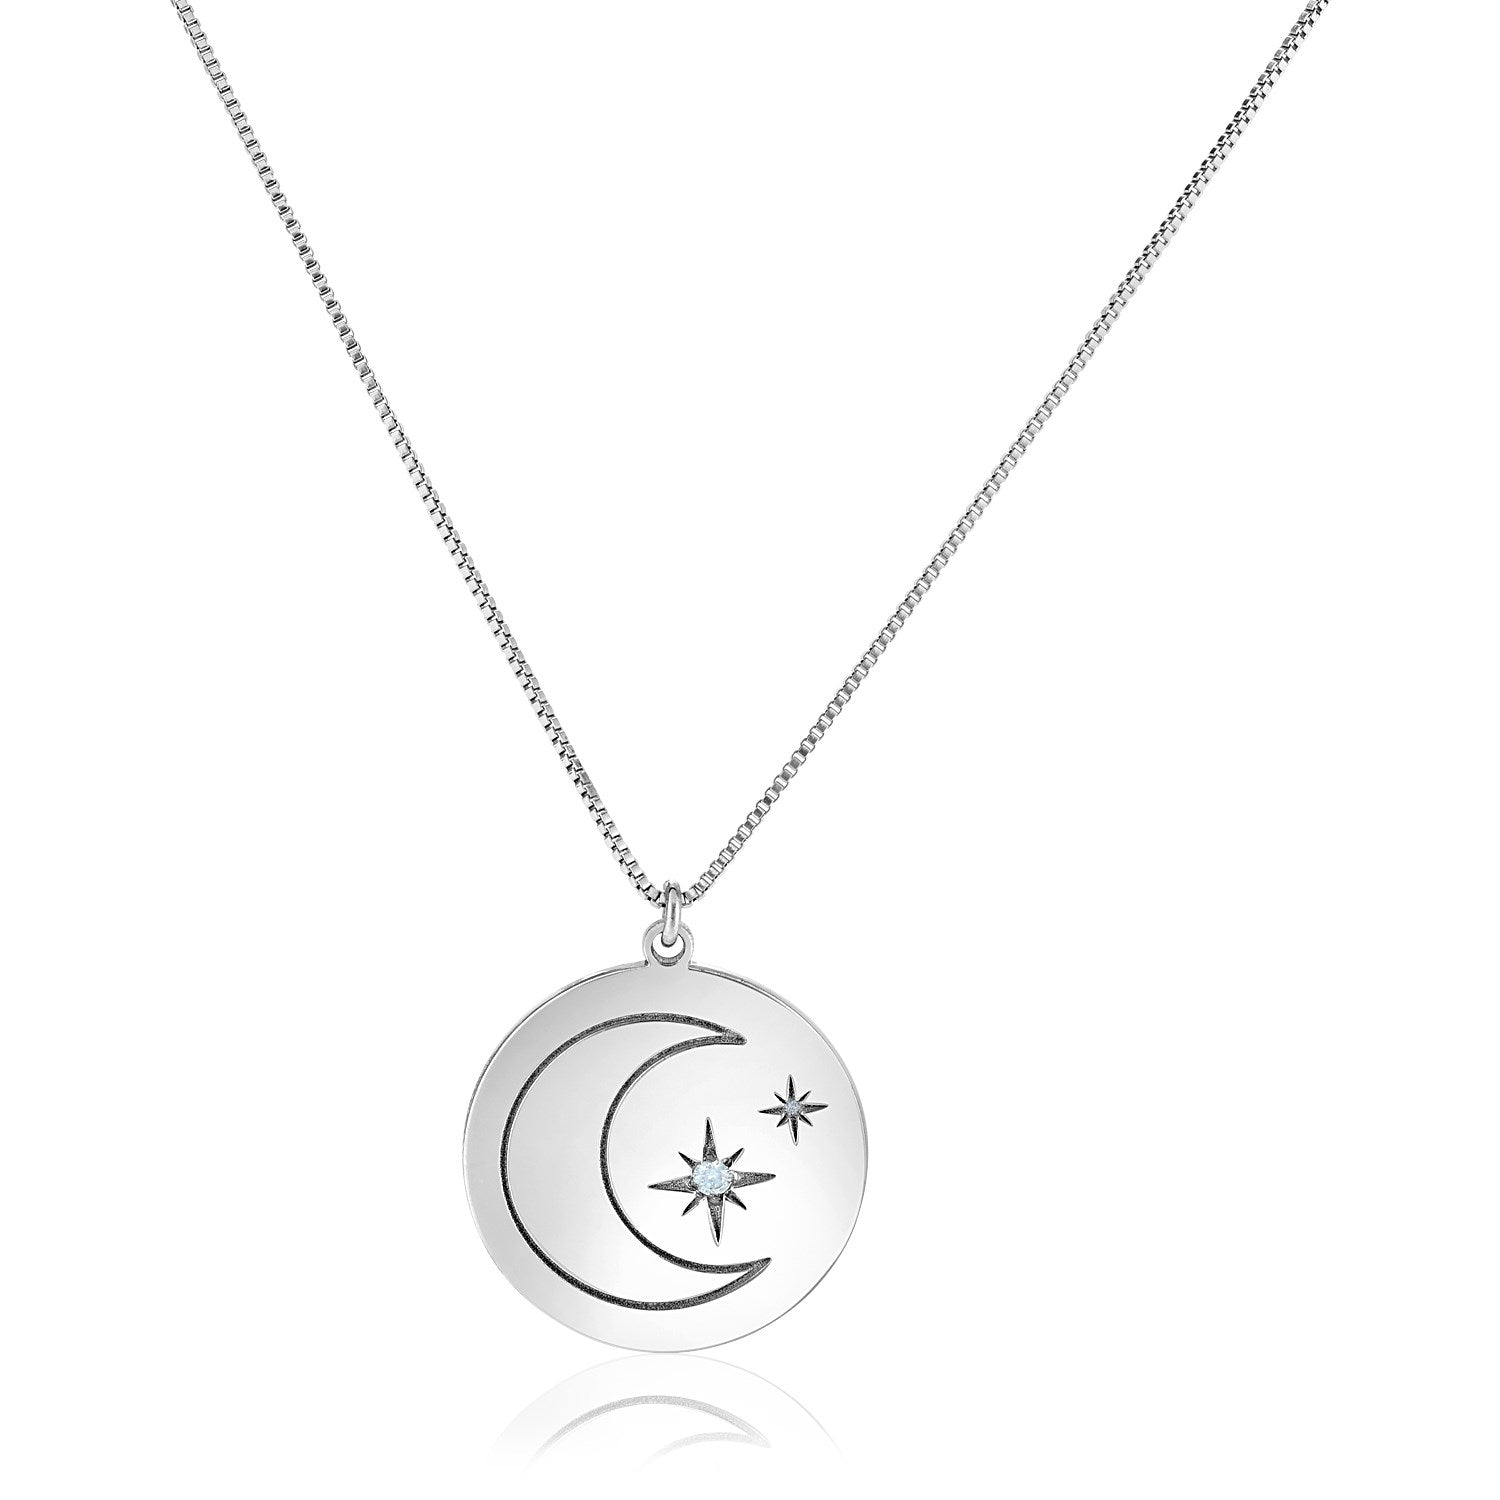 Sterling Silver 18 inch Necklace with Engraved Moon and Stars and Diamonds